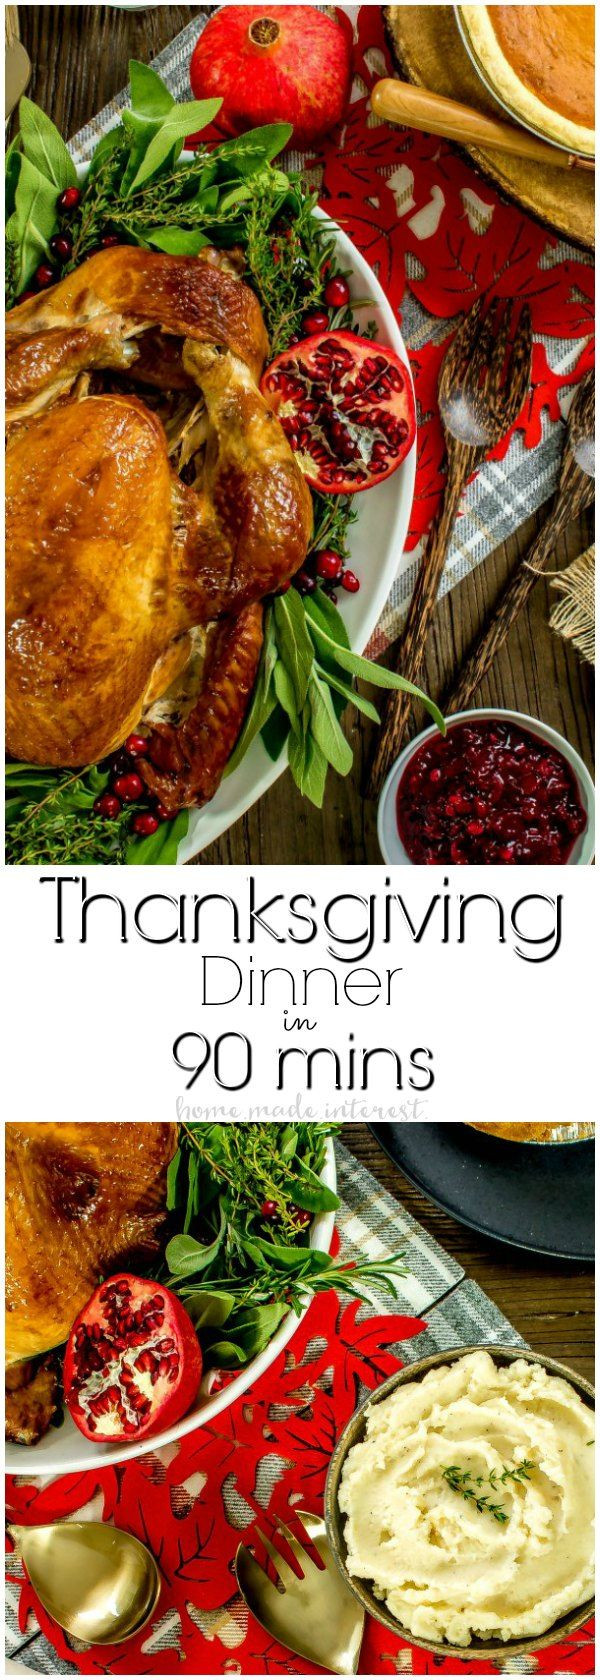 Delivered Thanksgiving Dinners  348 best Thanksgiving images on Pinterest